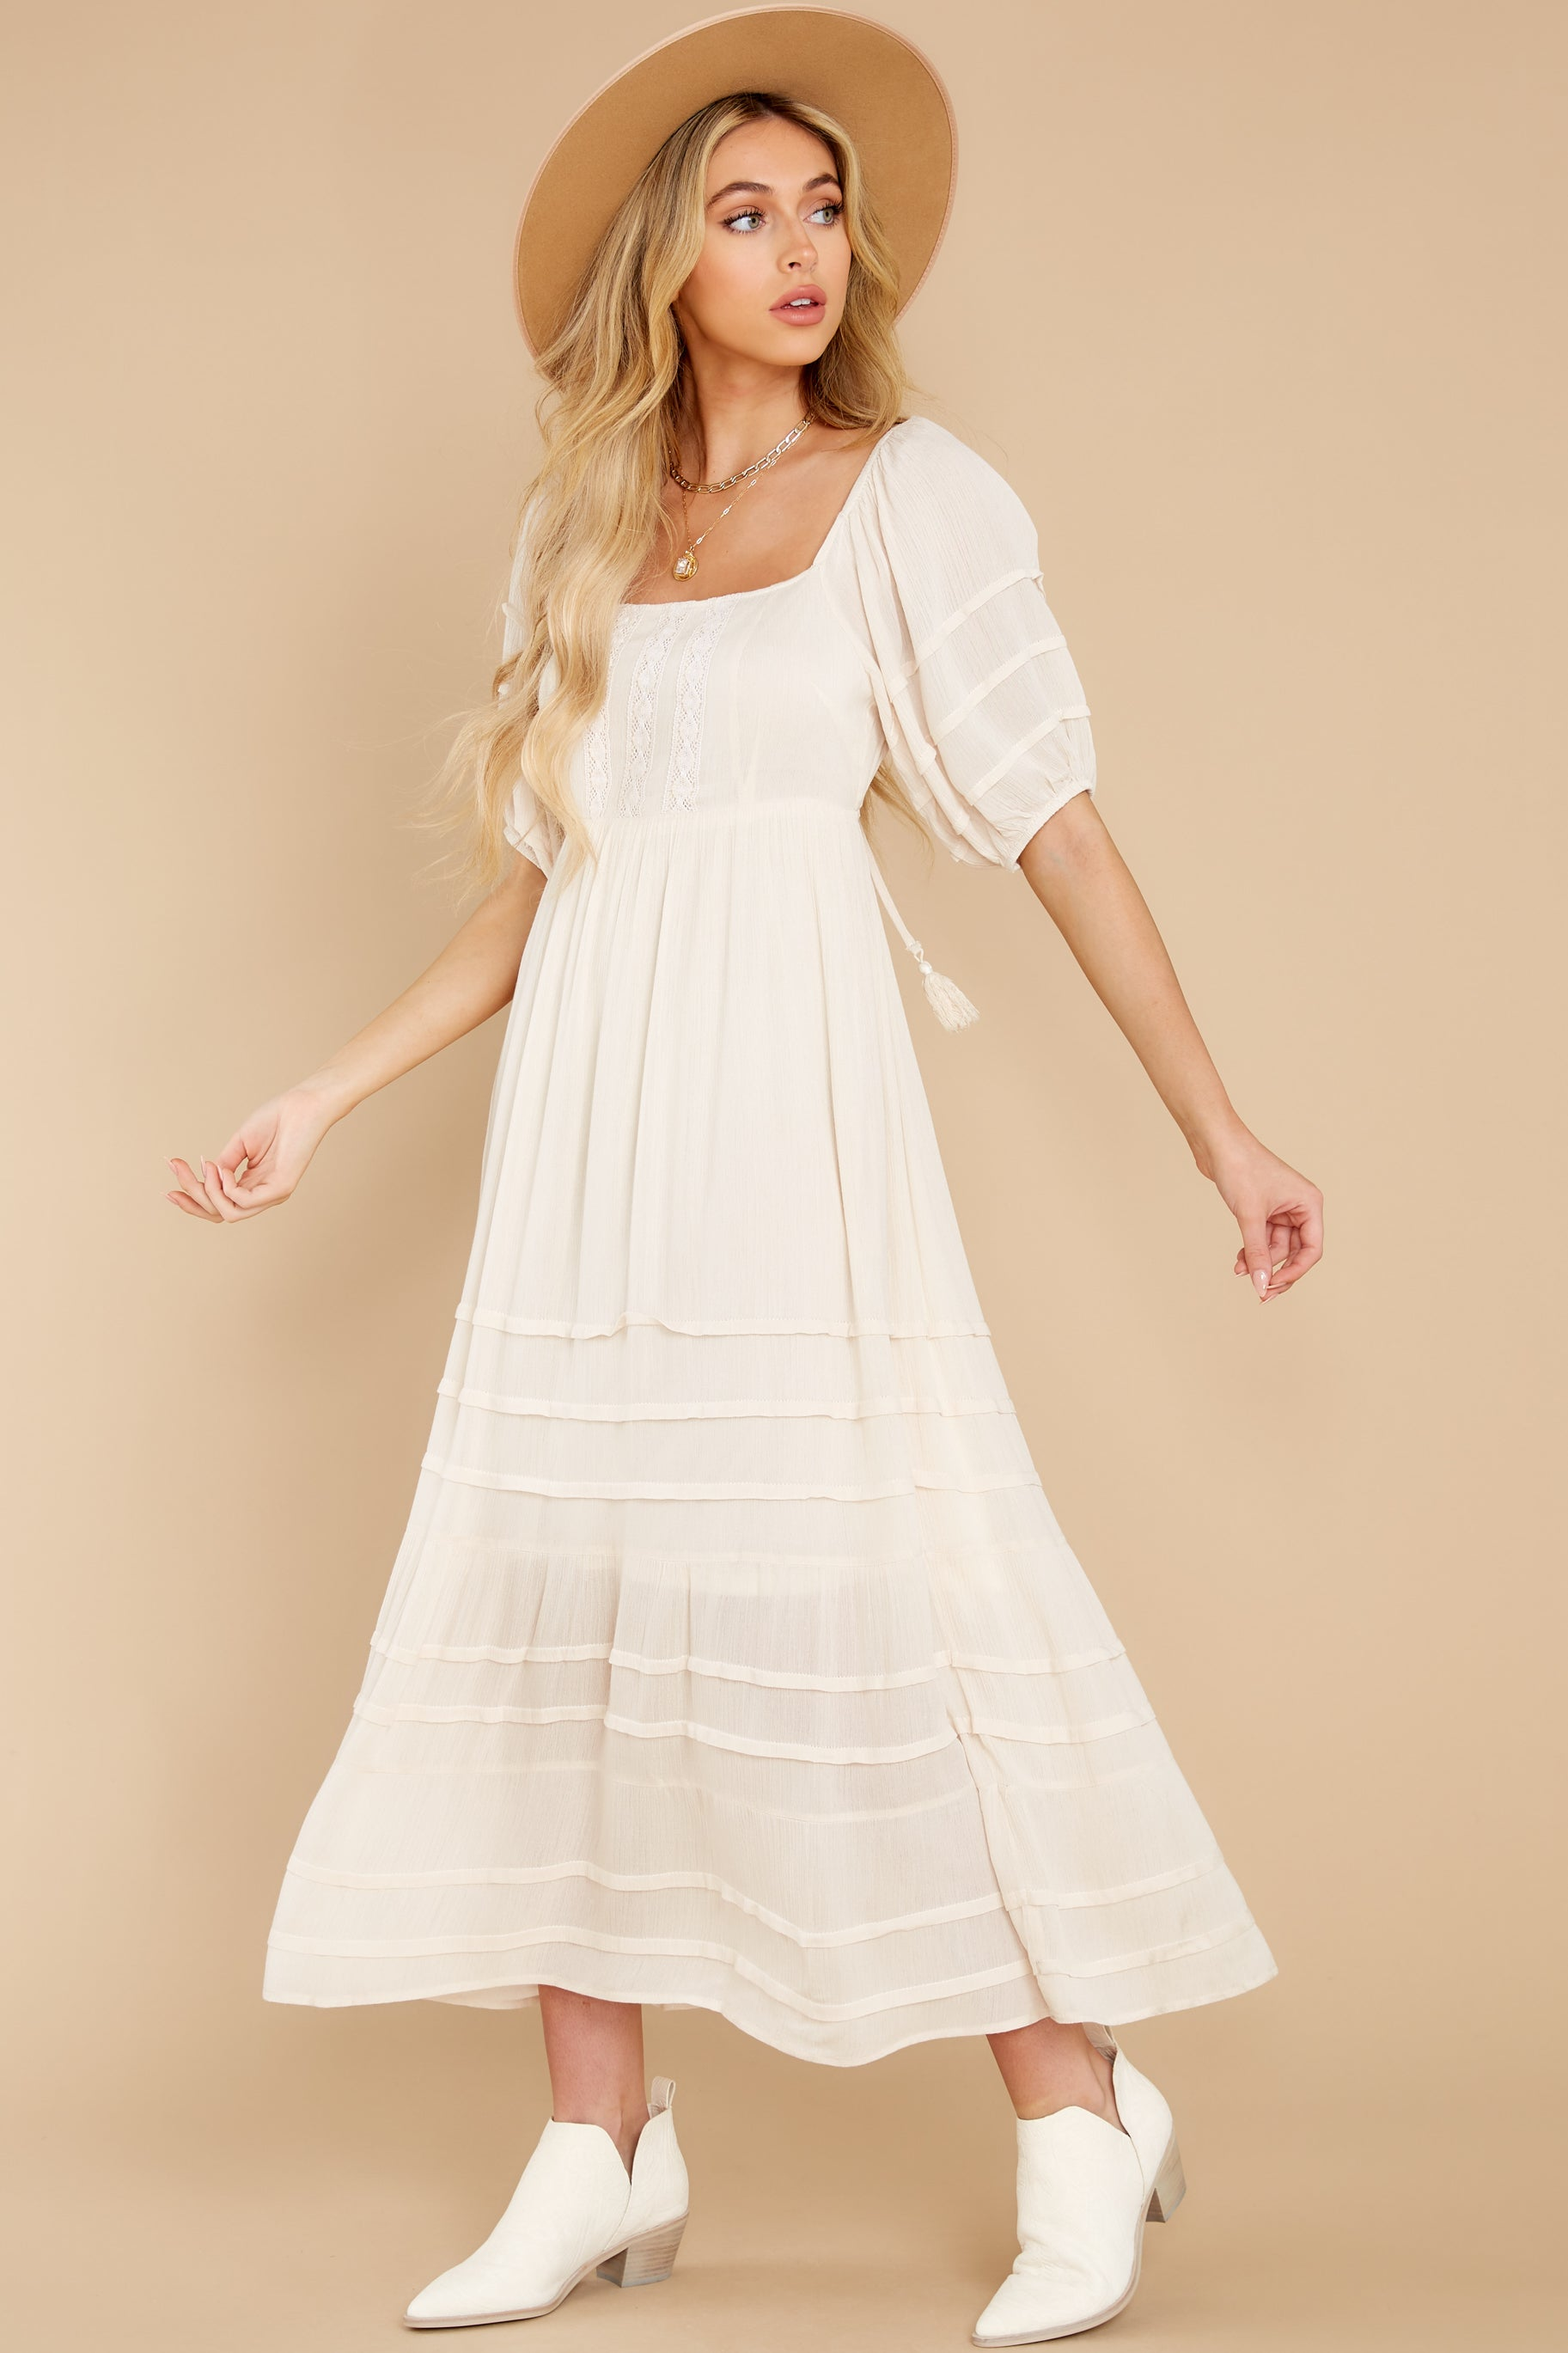 4 Long Way Around Ivory Maxi Dress at reddress.com